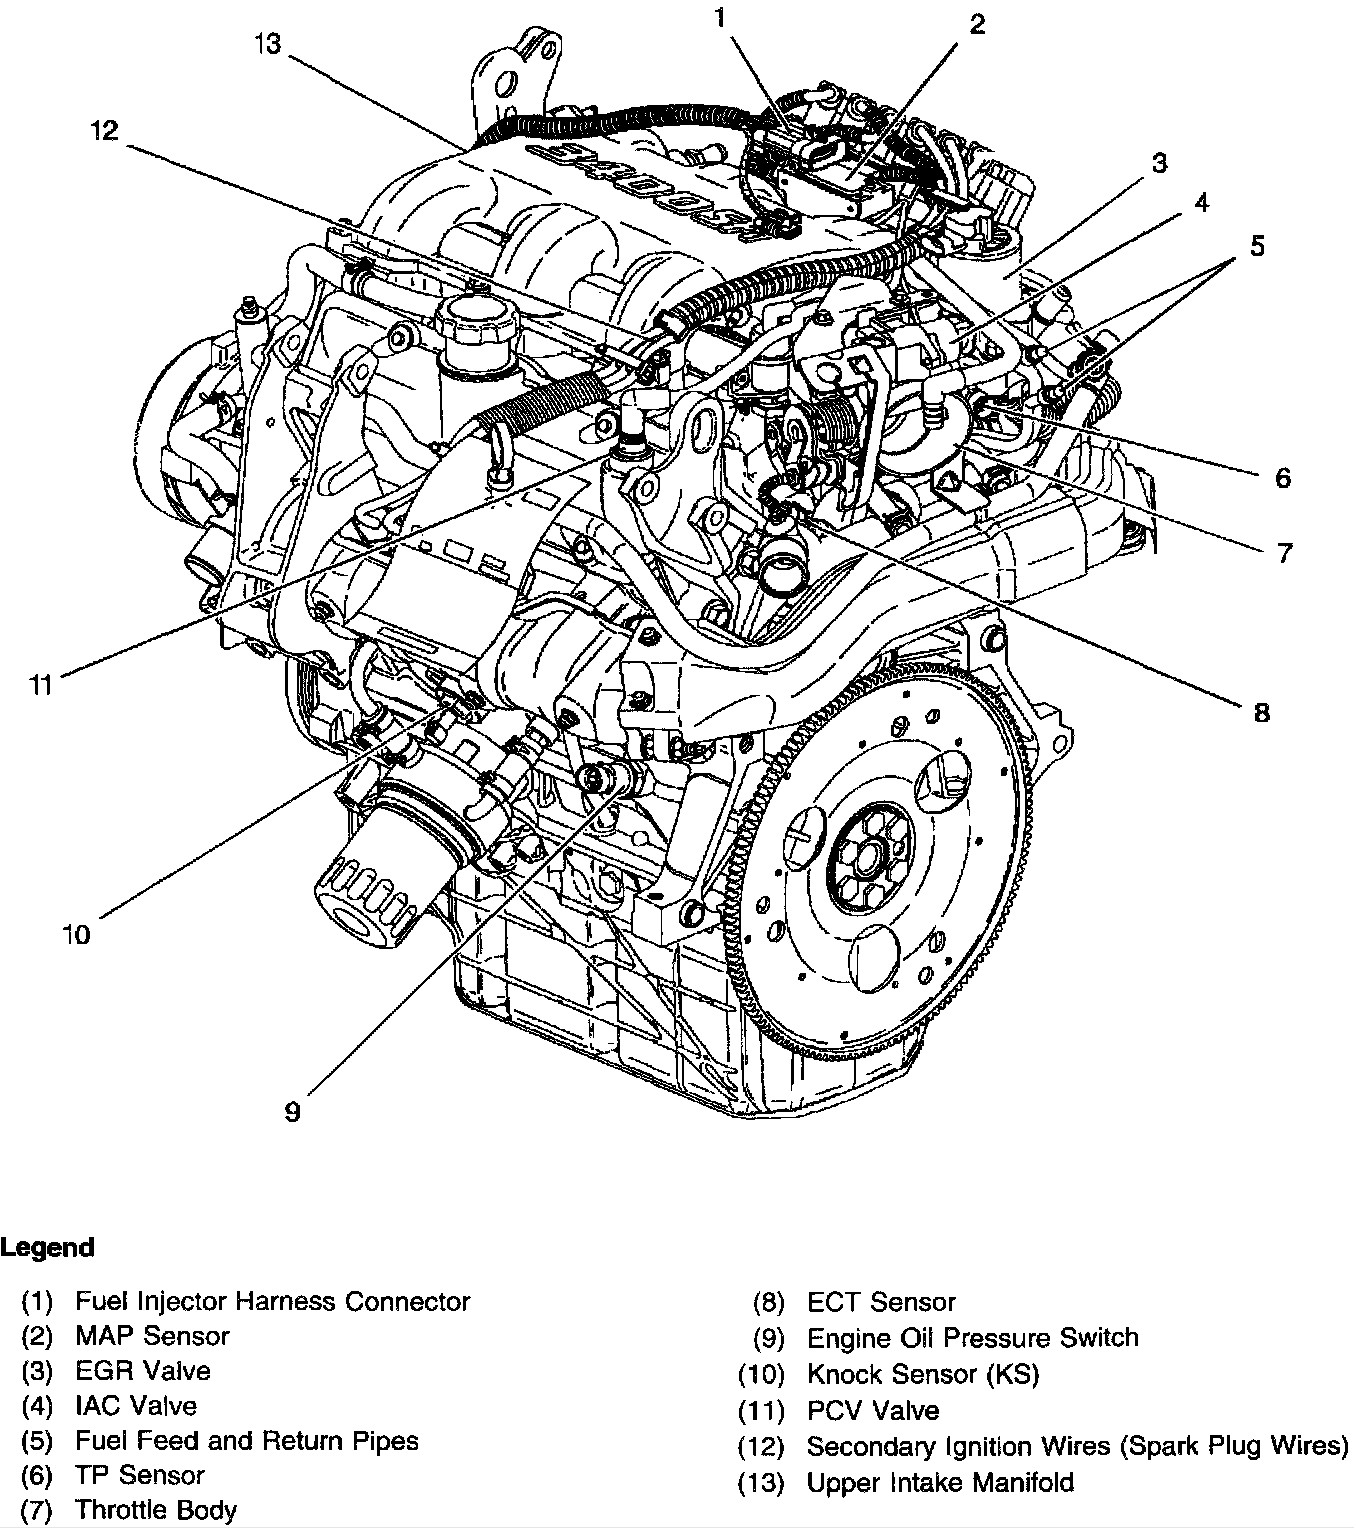 Groovy 1996 Chevy Lumina Engine Diagram Wiring Diagram Data Wiring Database Mangnorabwedabyuccorg